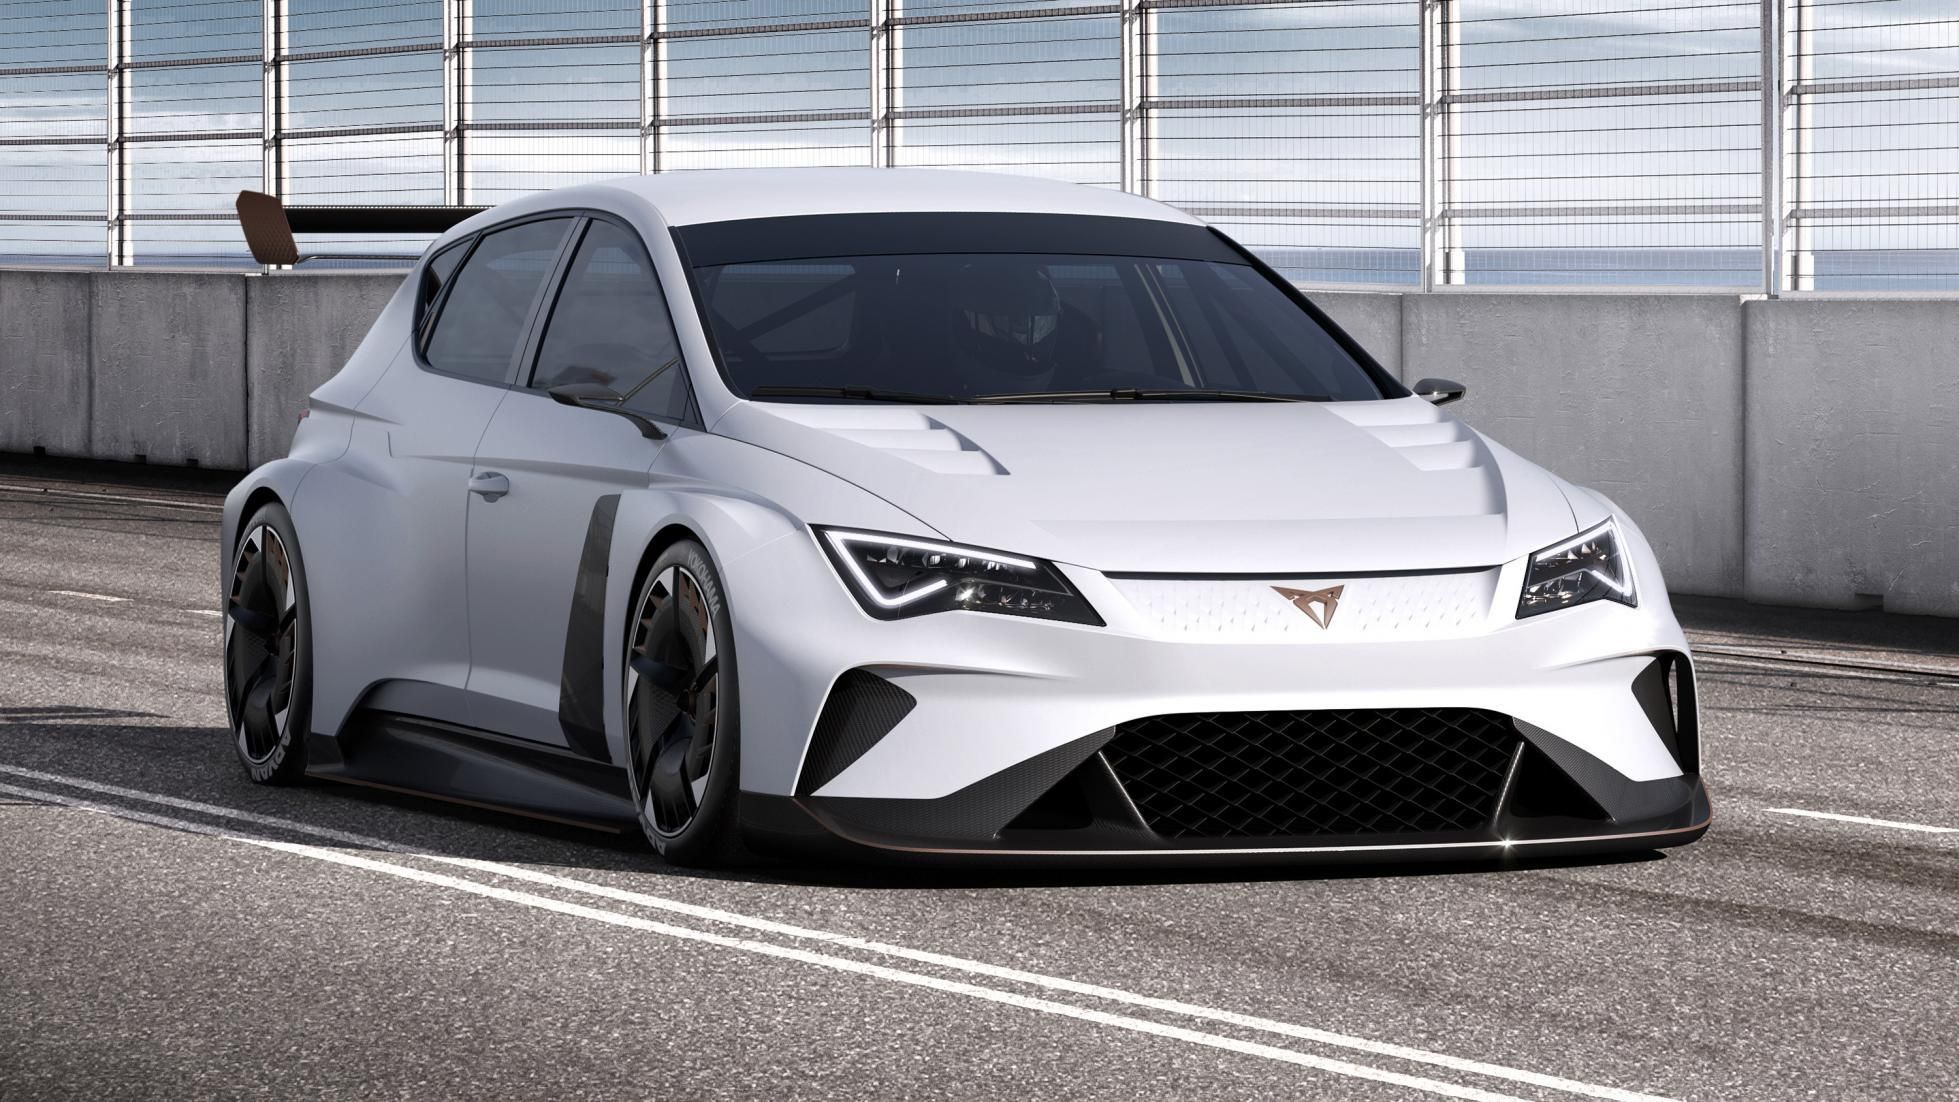 What New Cars Can We Expect From Seat S Fast Brand Cupra Top Gear In 2020 Touring Car Racing Seat Cupra Race Cars